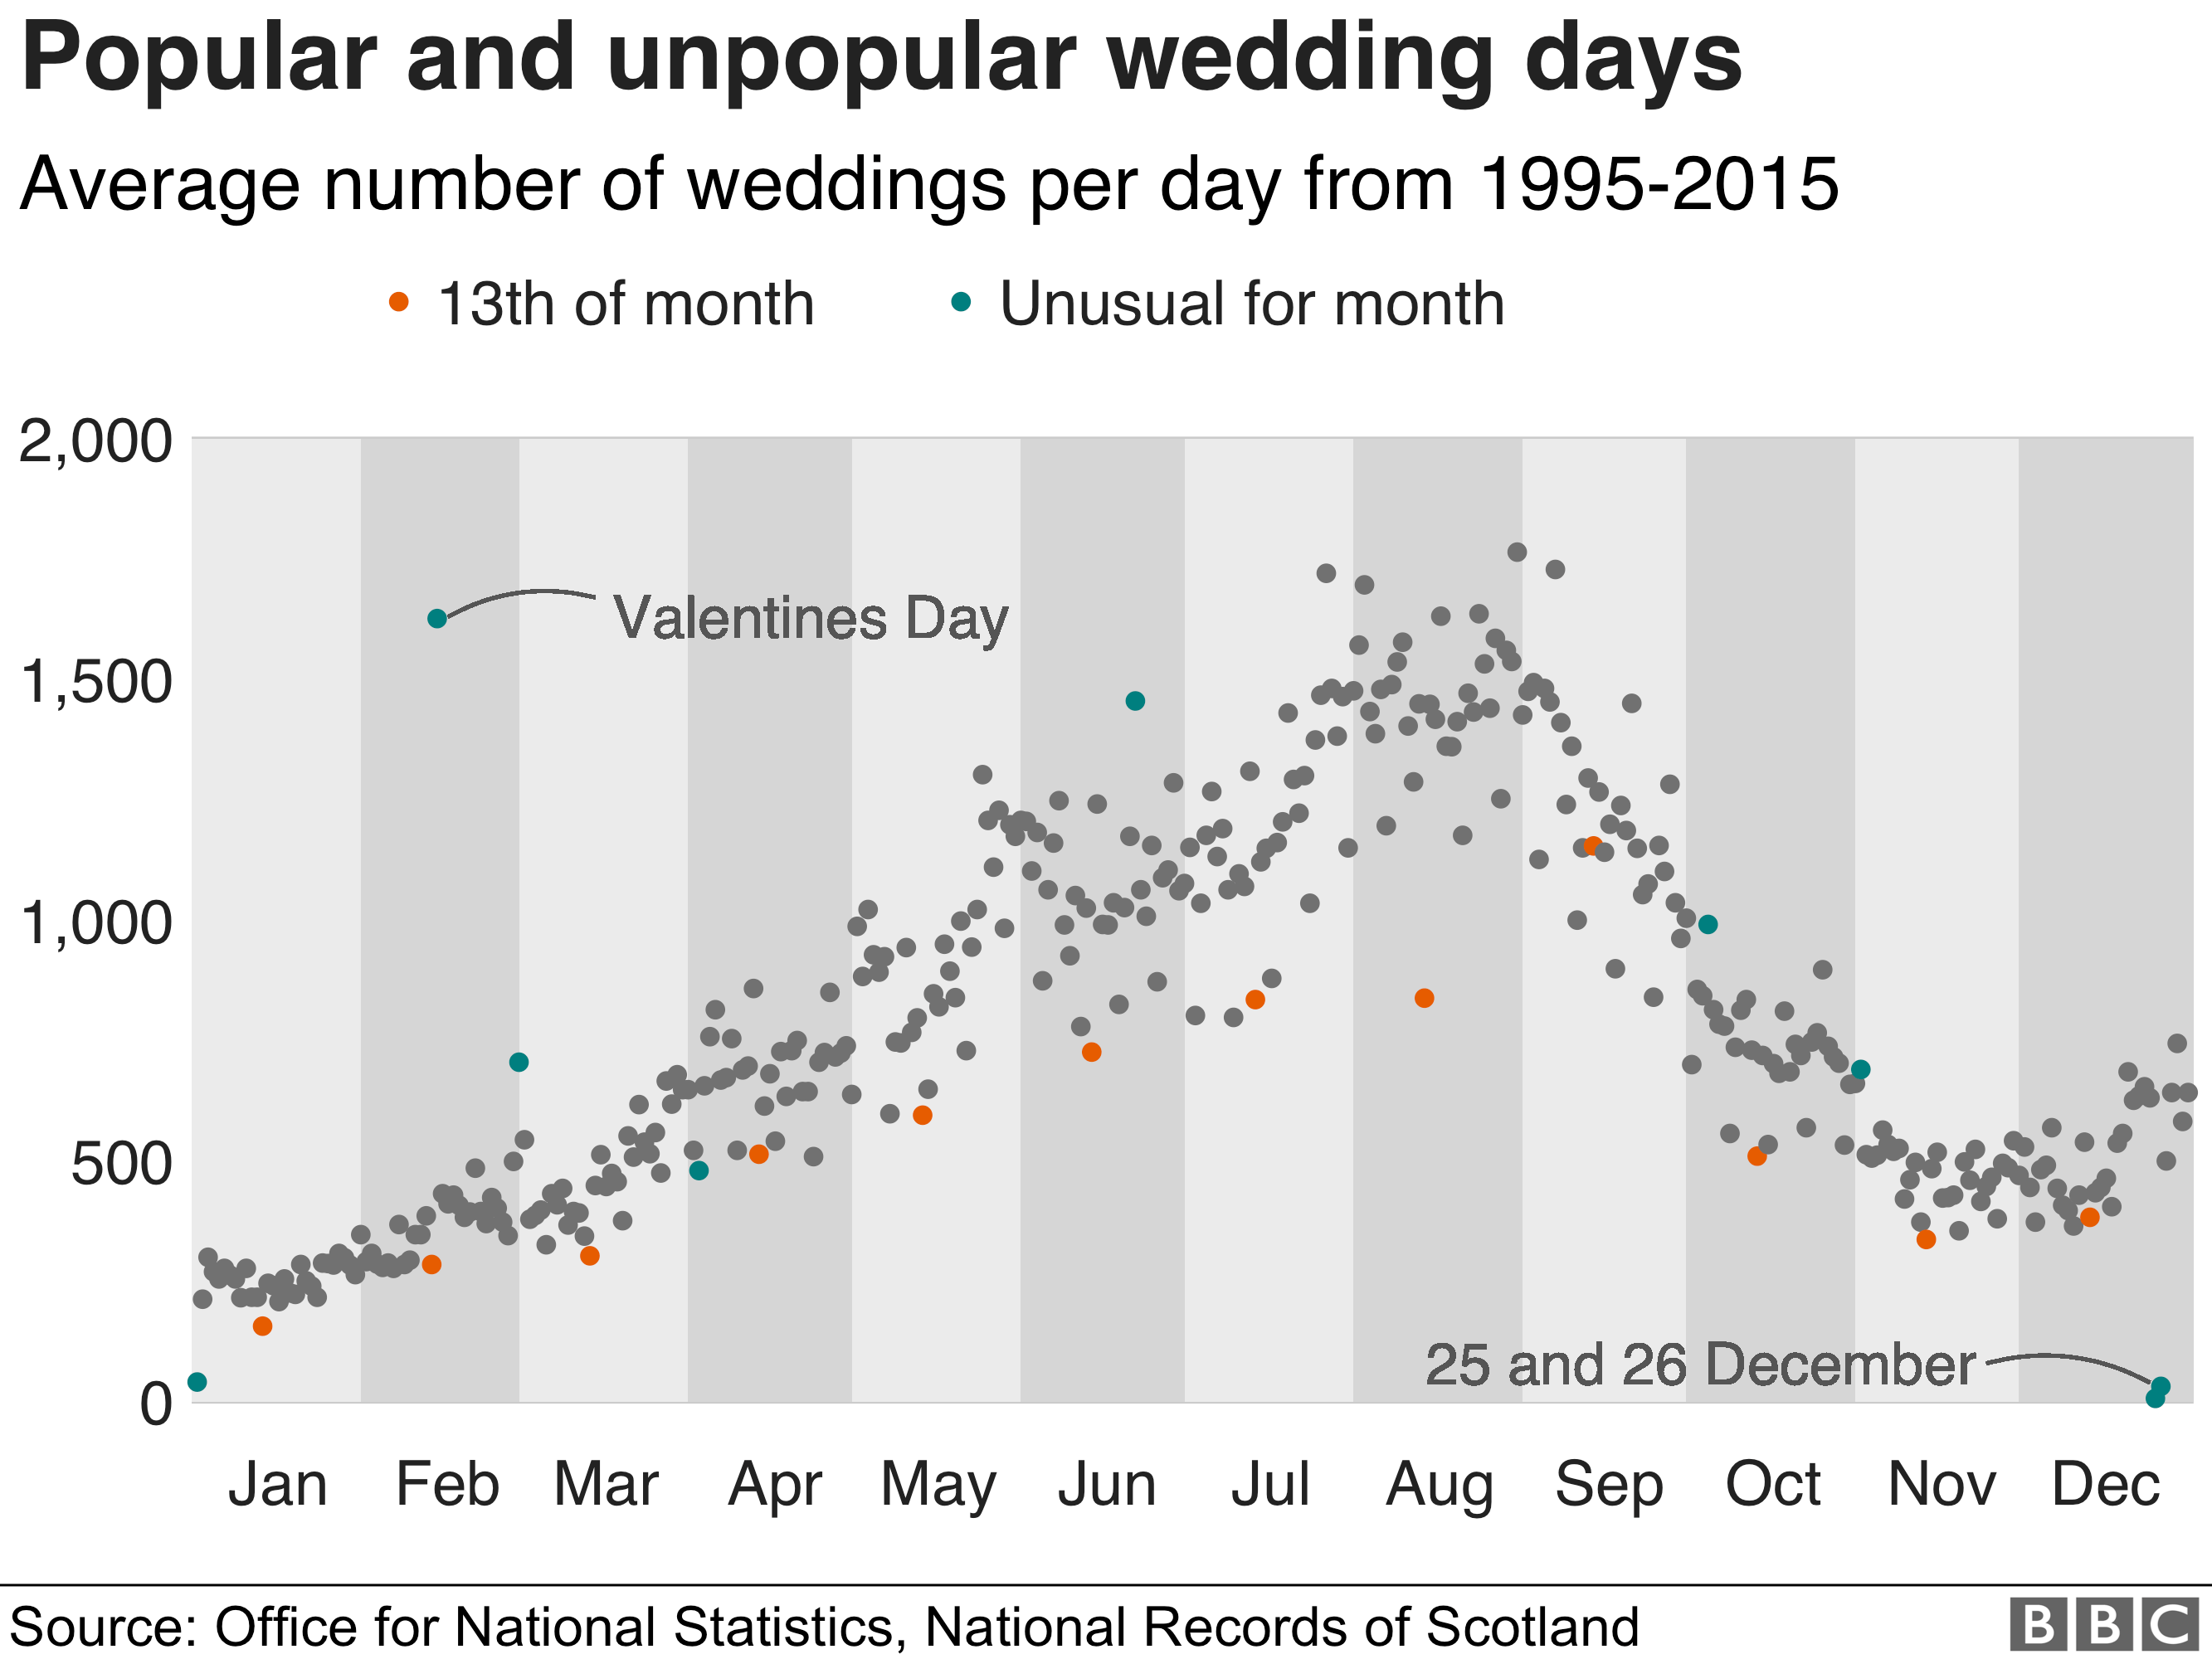 Chart showing average number of weddings per day, with 13th of month highlighted as unpopular and Valentine's Day highlighted as popular